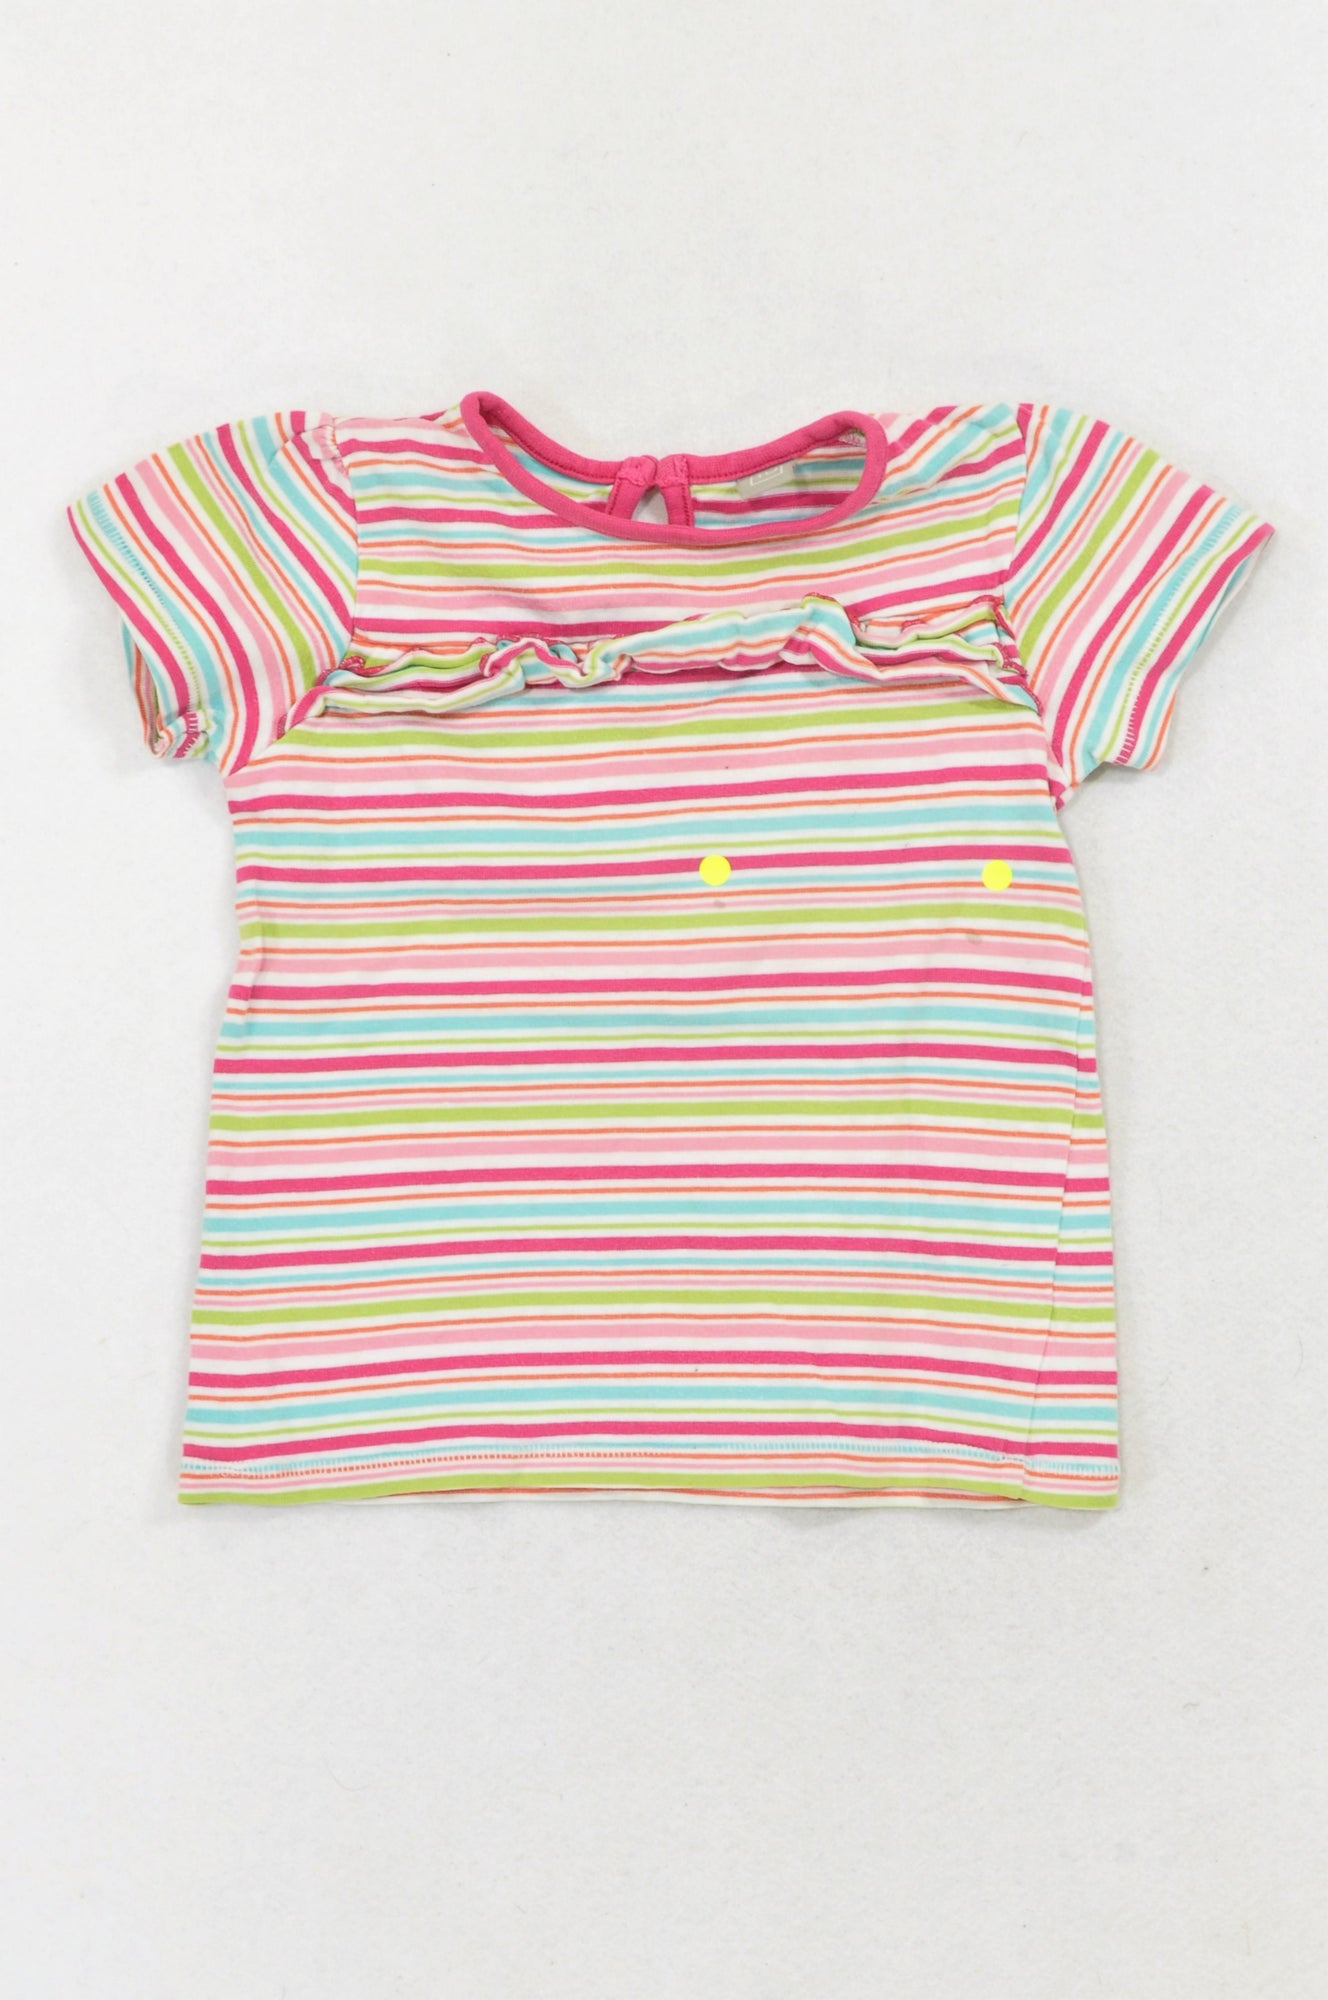 Tu Pink Stripe Frill T-shirt Girls 18-24 months